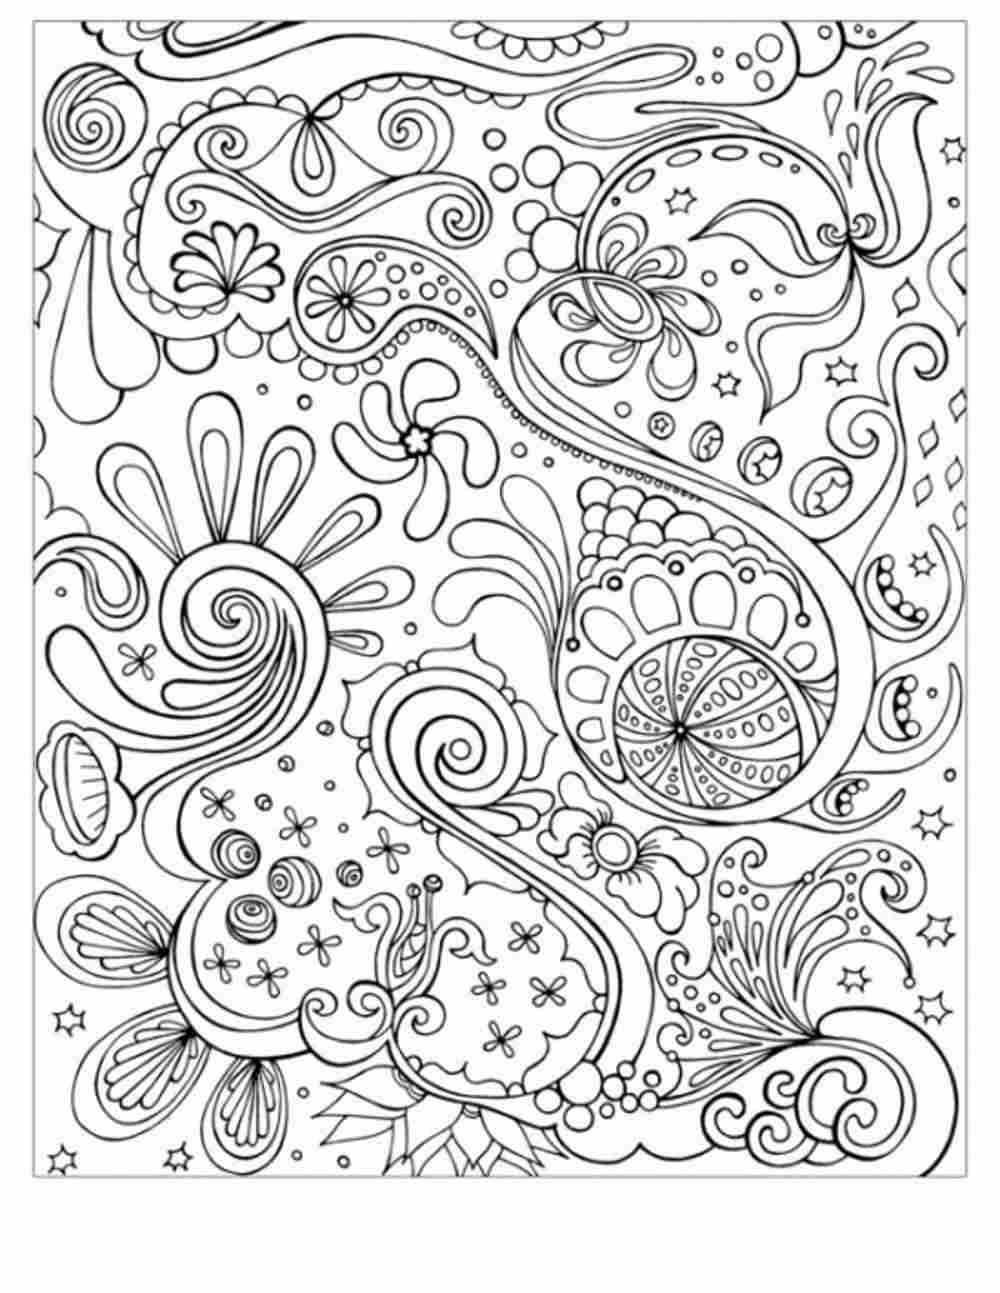 Free Online Abstract Coloring Pages - Coloring Home | 1293x1000